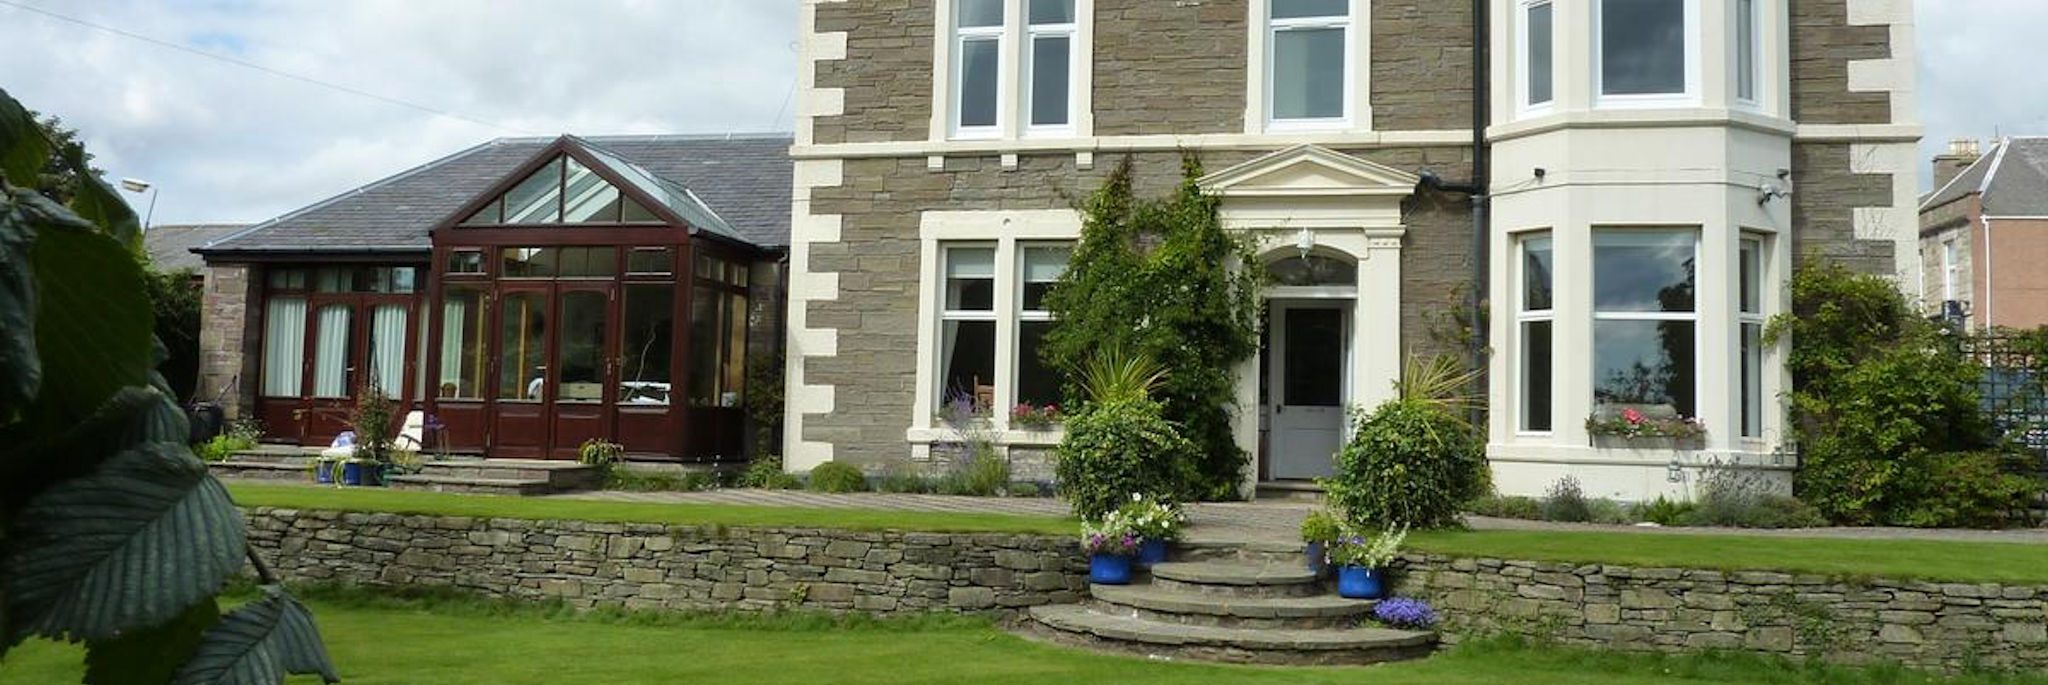 Park House Bed and Breakfast, Carnoustie